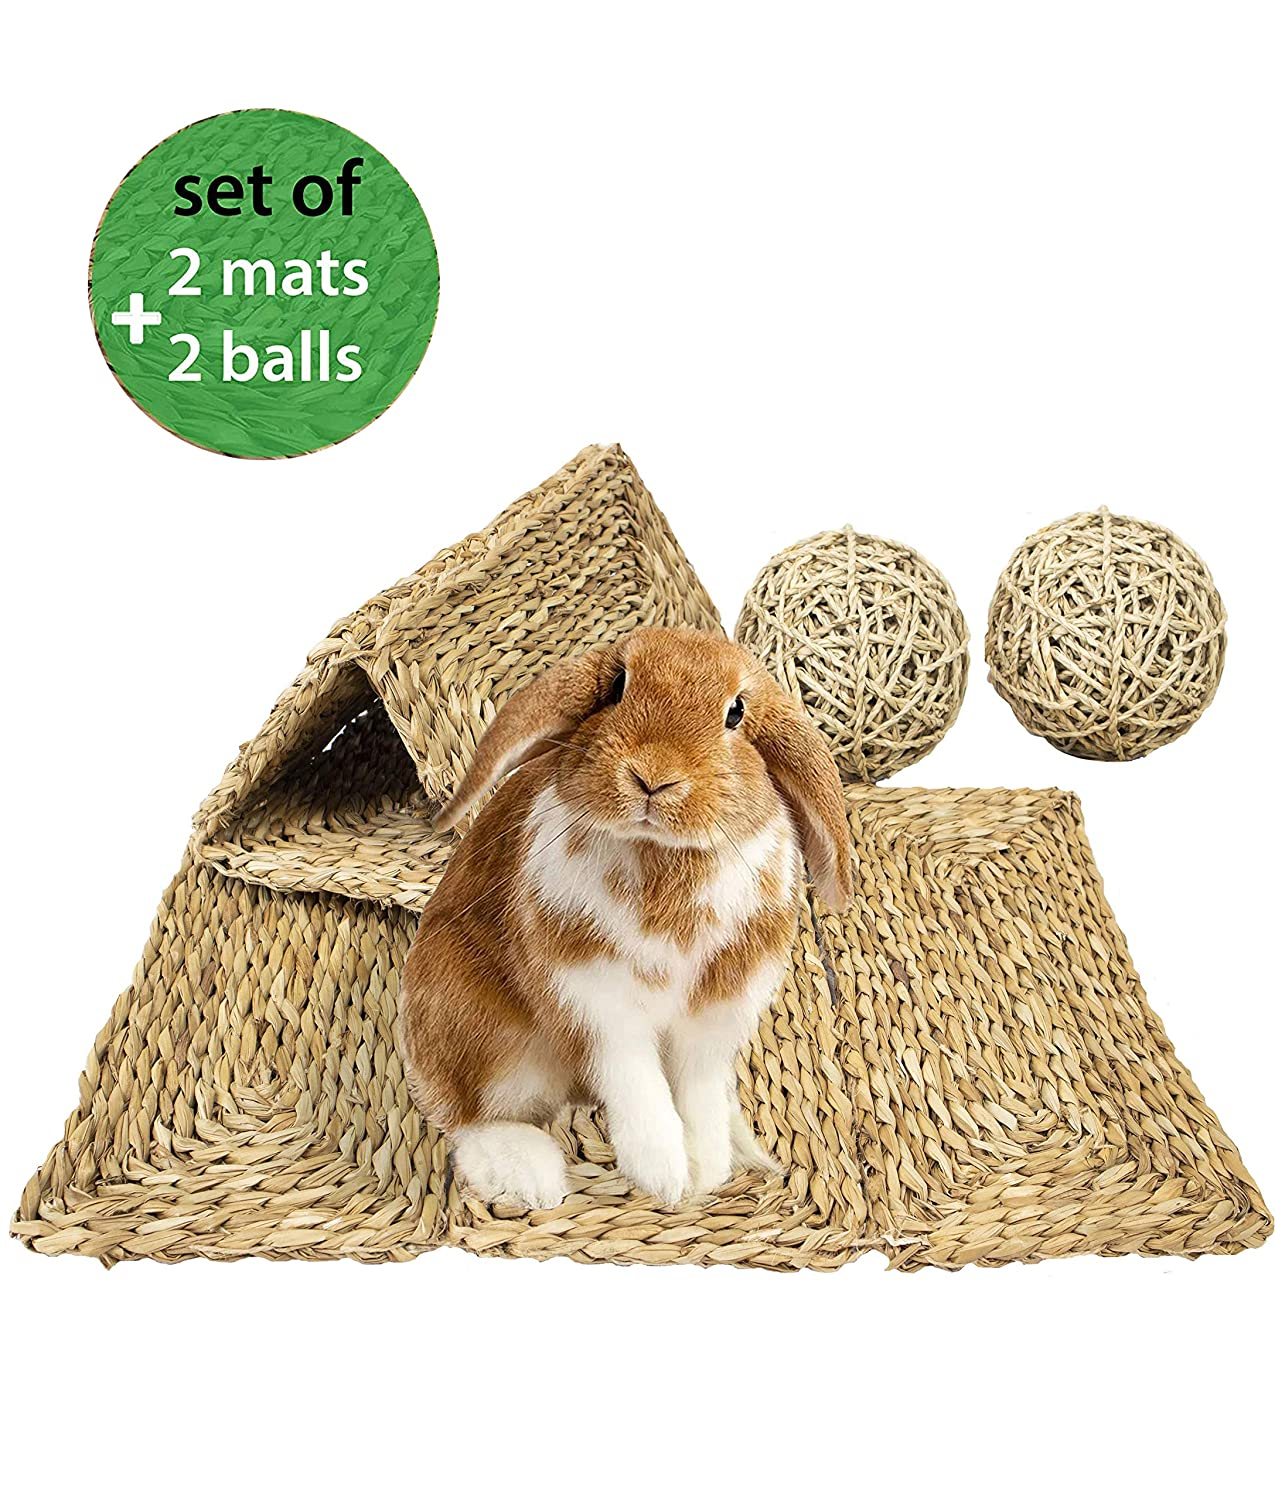 MadeTerra Grass Pet Mats and Balls for Bunny, Rabbit, Hamster, Guinea Pig, Chinchilla and Small Animals Woven Play Bedding and Chew Toys | Protect Paws from Wire Cage, Save Carpet and Furniture